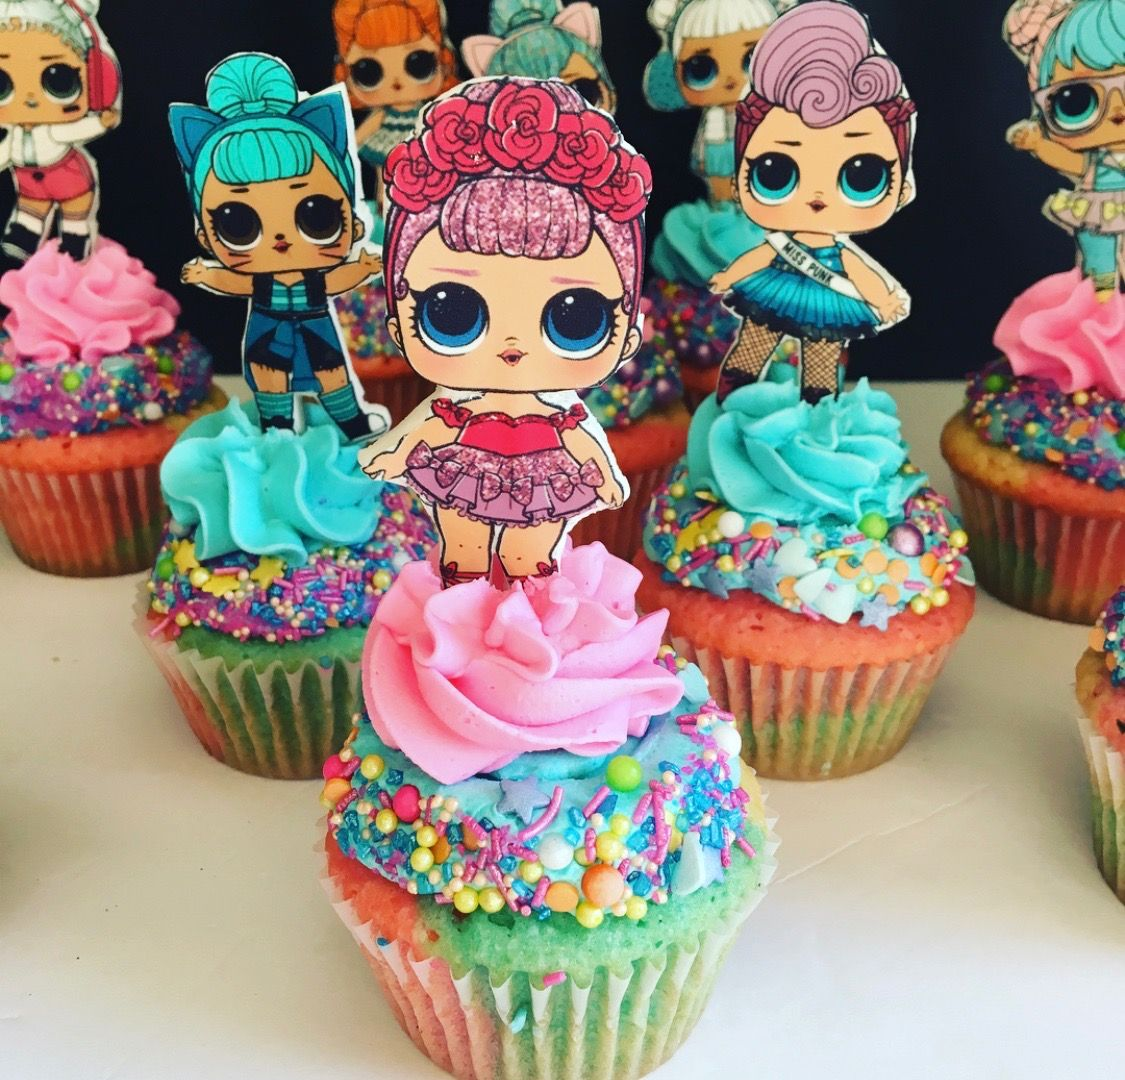 Lol Surprise Dolls Cupcakes Birthday Surprise Party Birthday